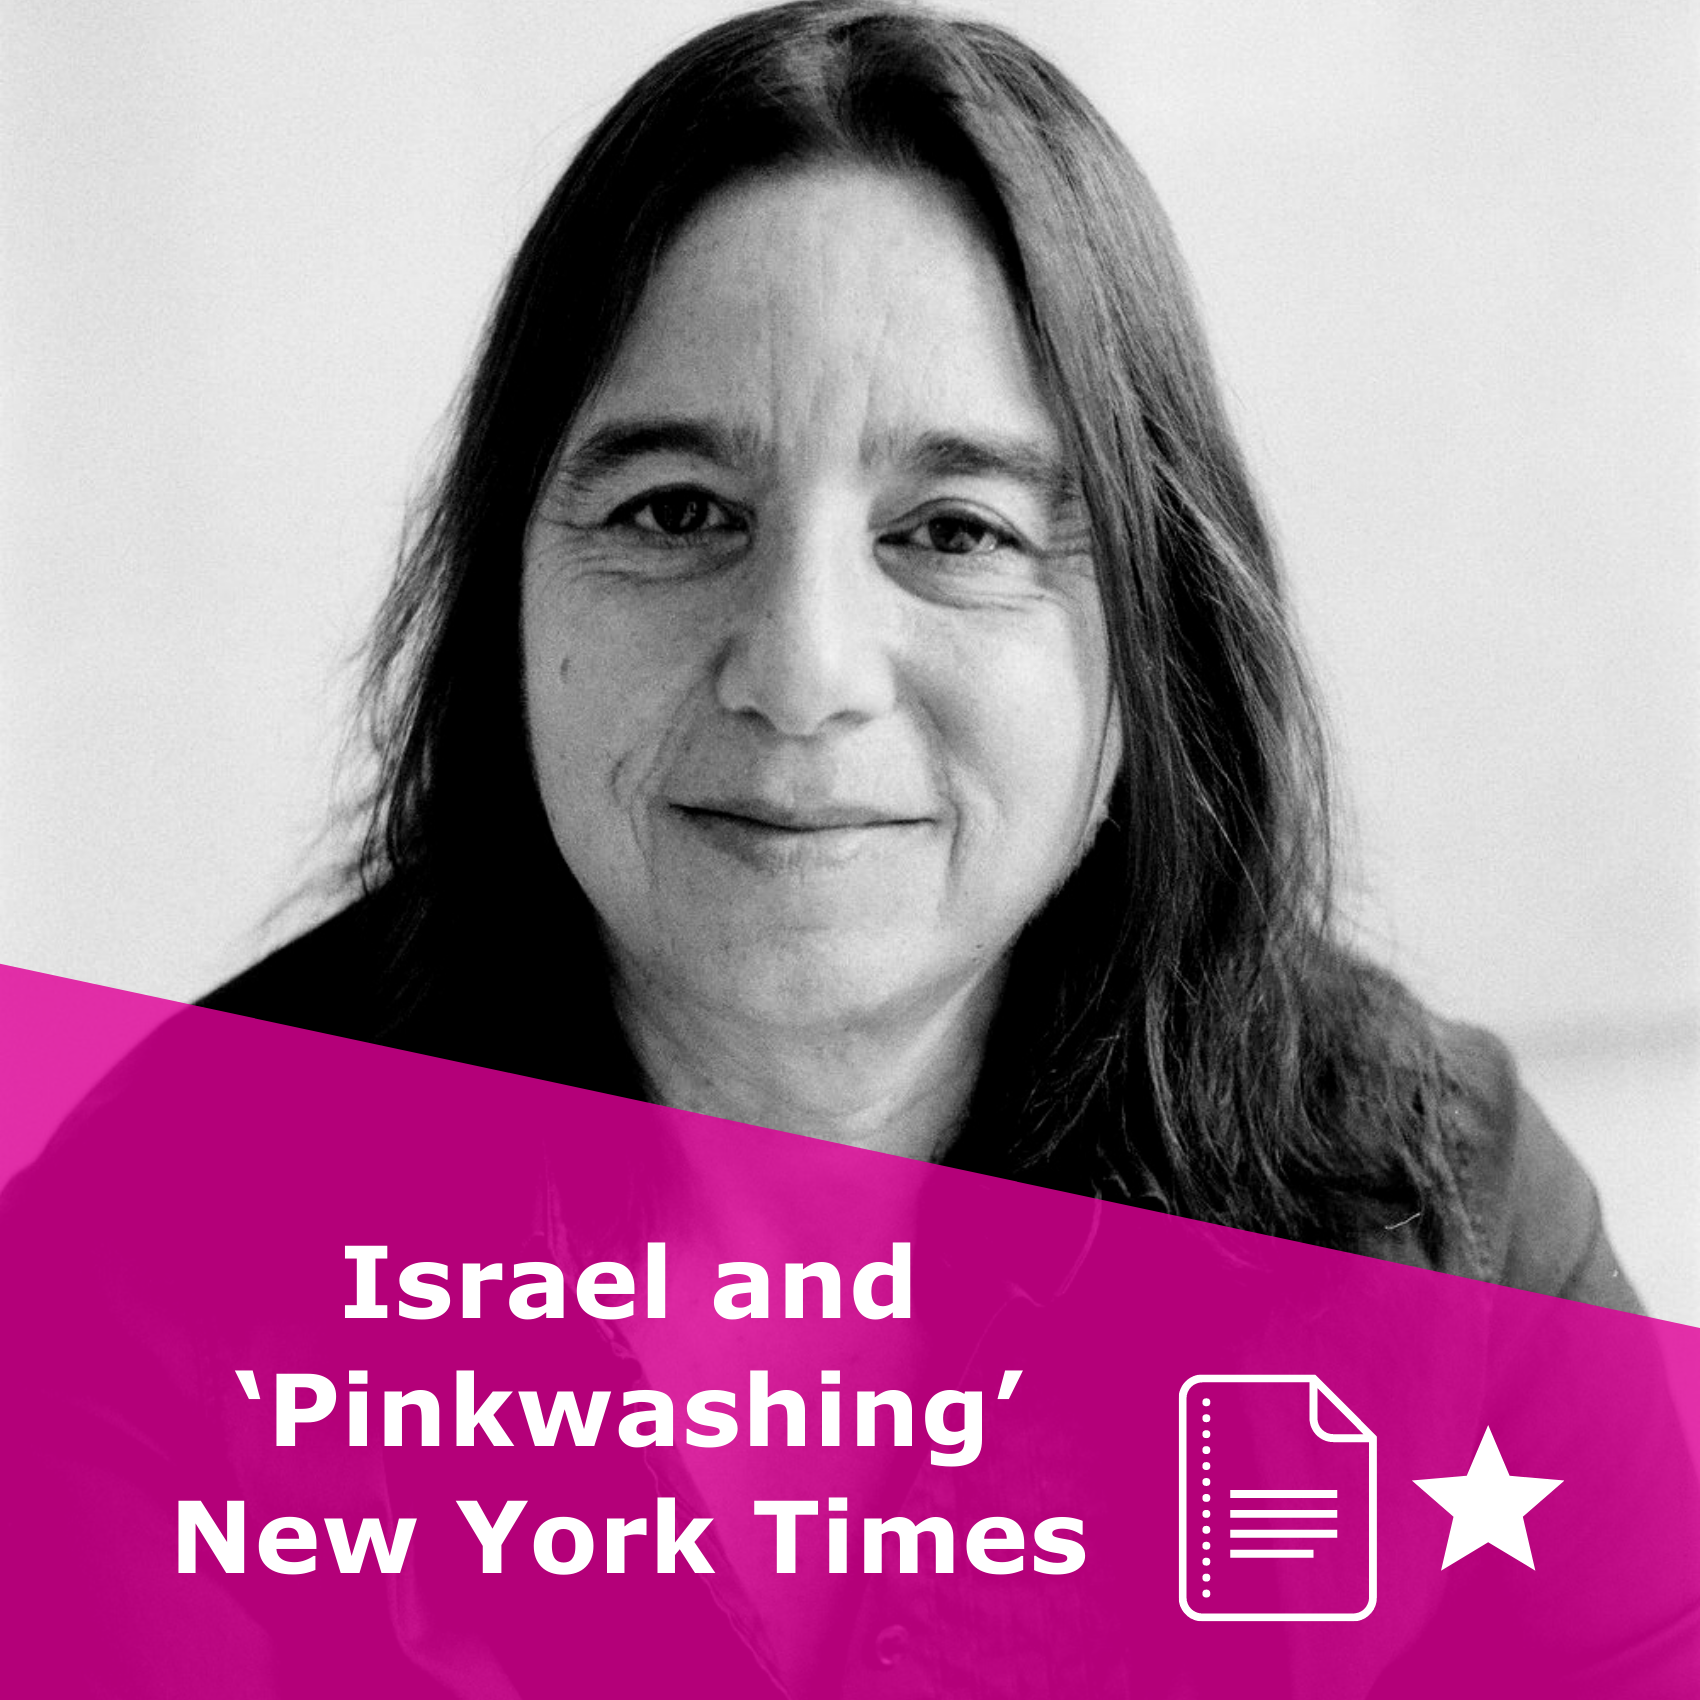 Picture of Sarah Schulman in black and white. Title 'Israel and 'Pinkwashing' | New York Times'. It is an article, rated one star.